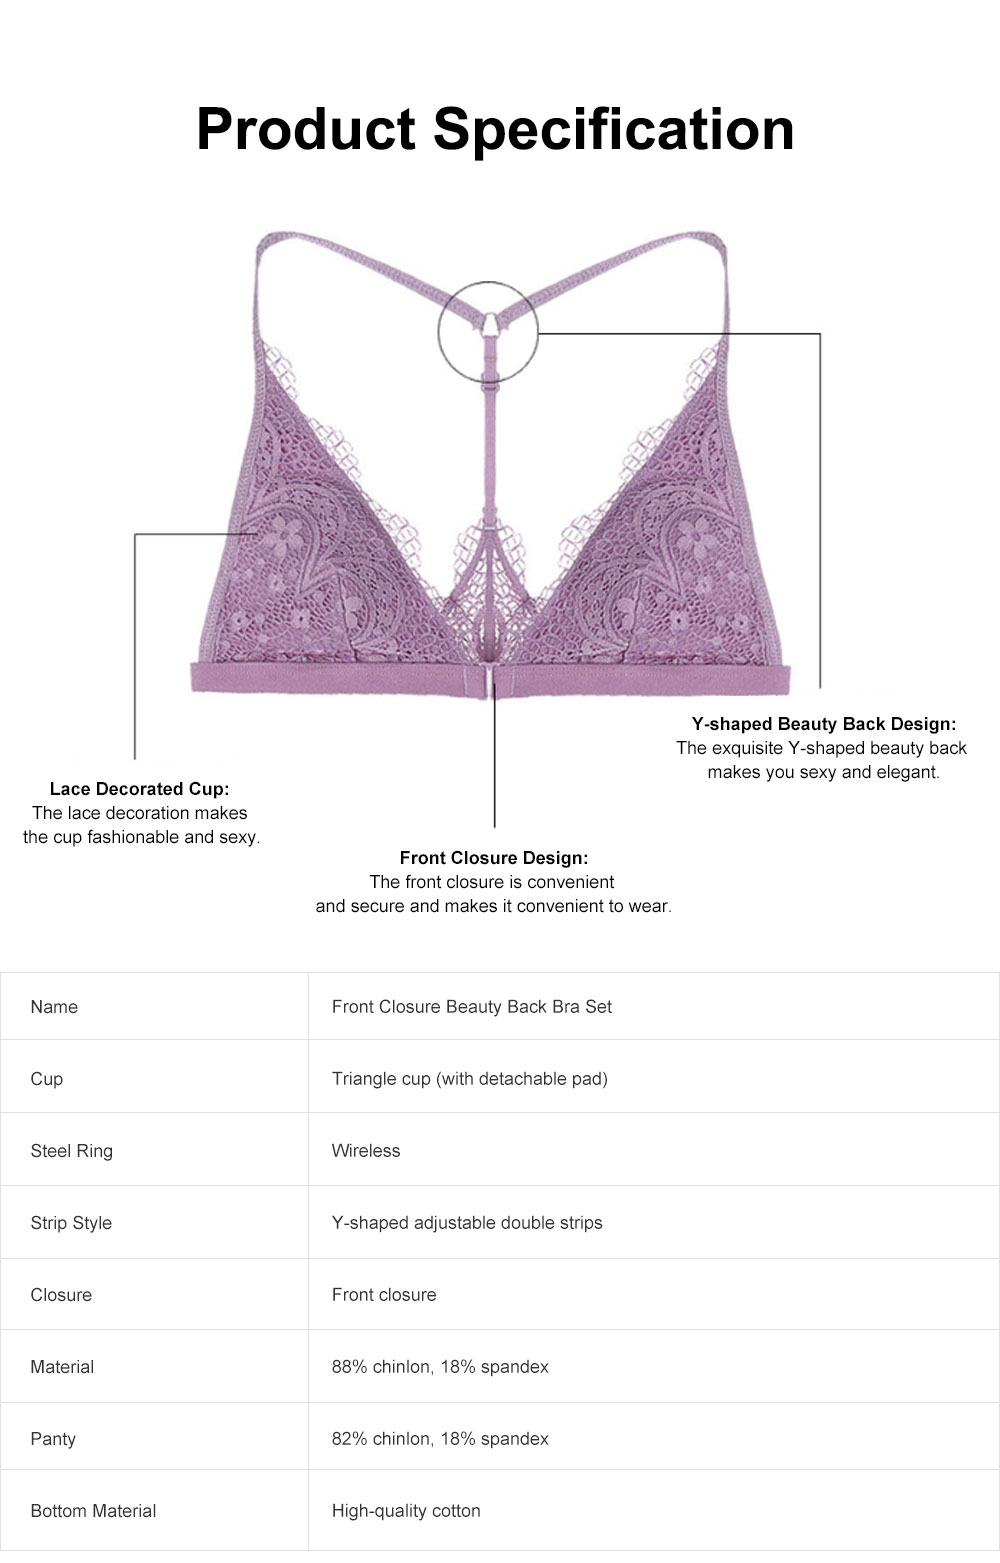 Women's Underwear Set Wireless Bra with Front Closure, Y-shaped Beauty Back Bra Set with Lace, Comfortable Bra and Panty Set 6